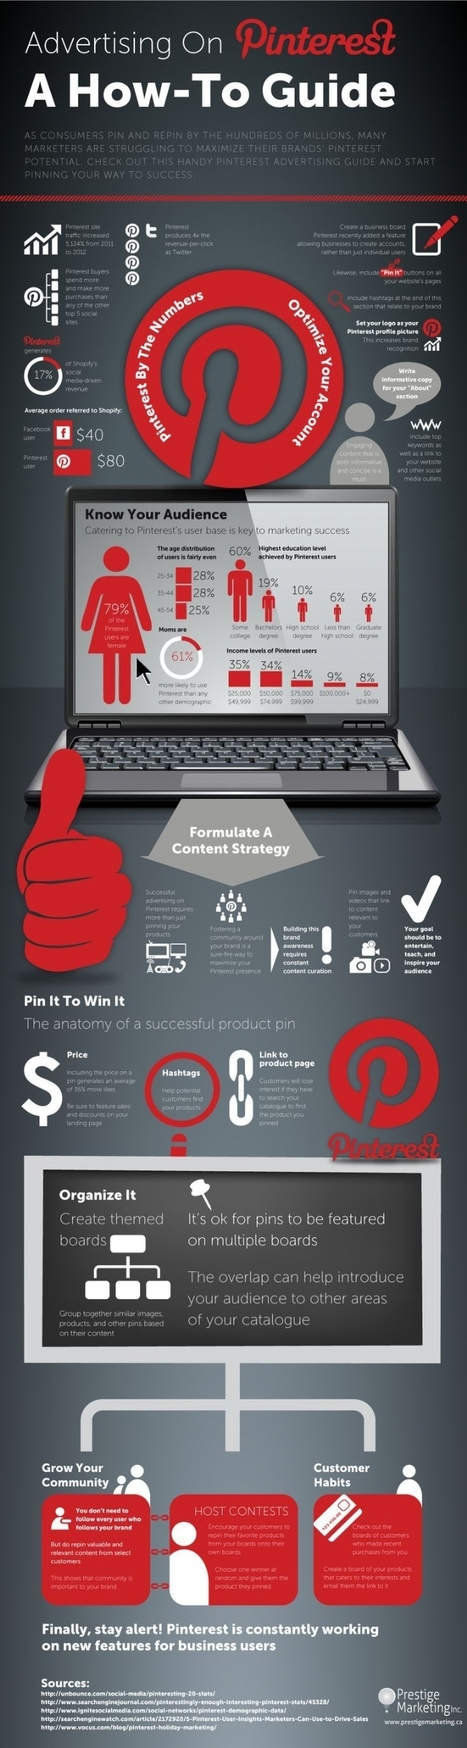 [Infographie] Publicité sur Pinterest : mode d'emploi | ebiznews | Scoop.it